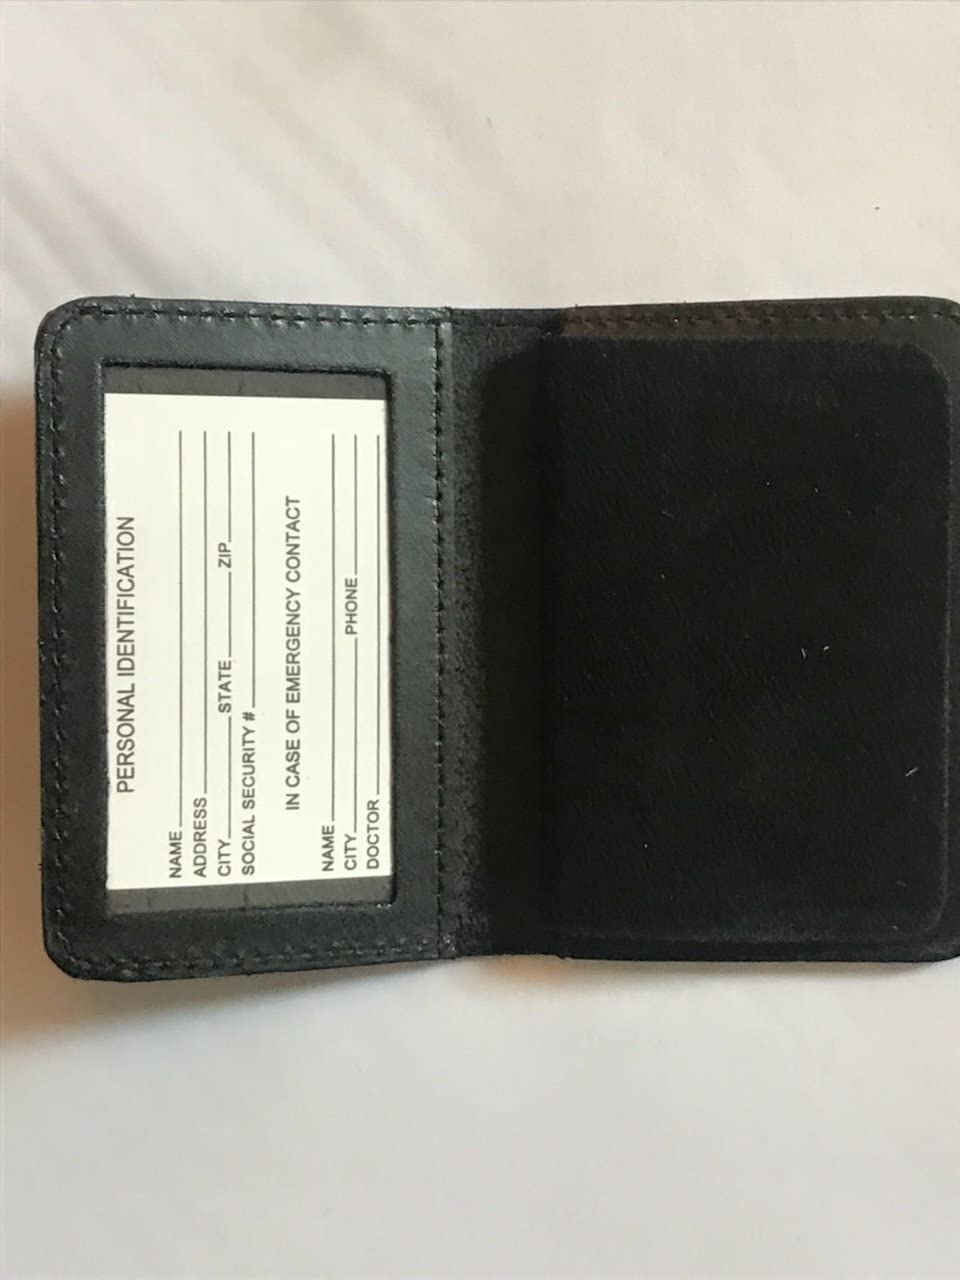 NEW YORK CITY POLICE OFFICER THIN BLUE LINE FAMILY MEMBER MINI SHIELD ID WALLET